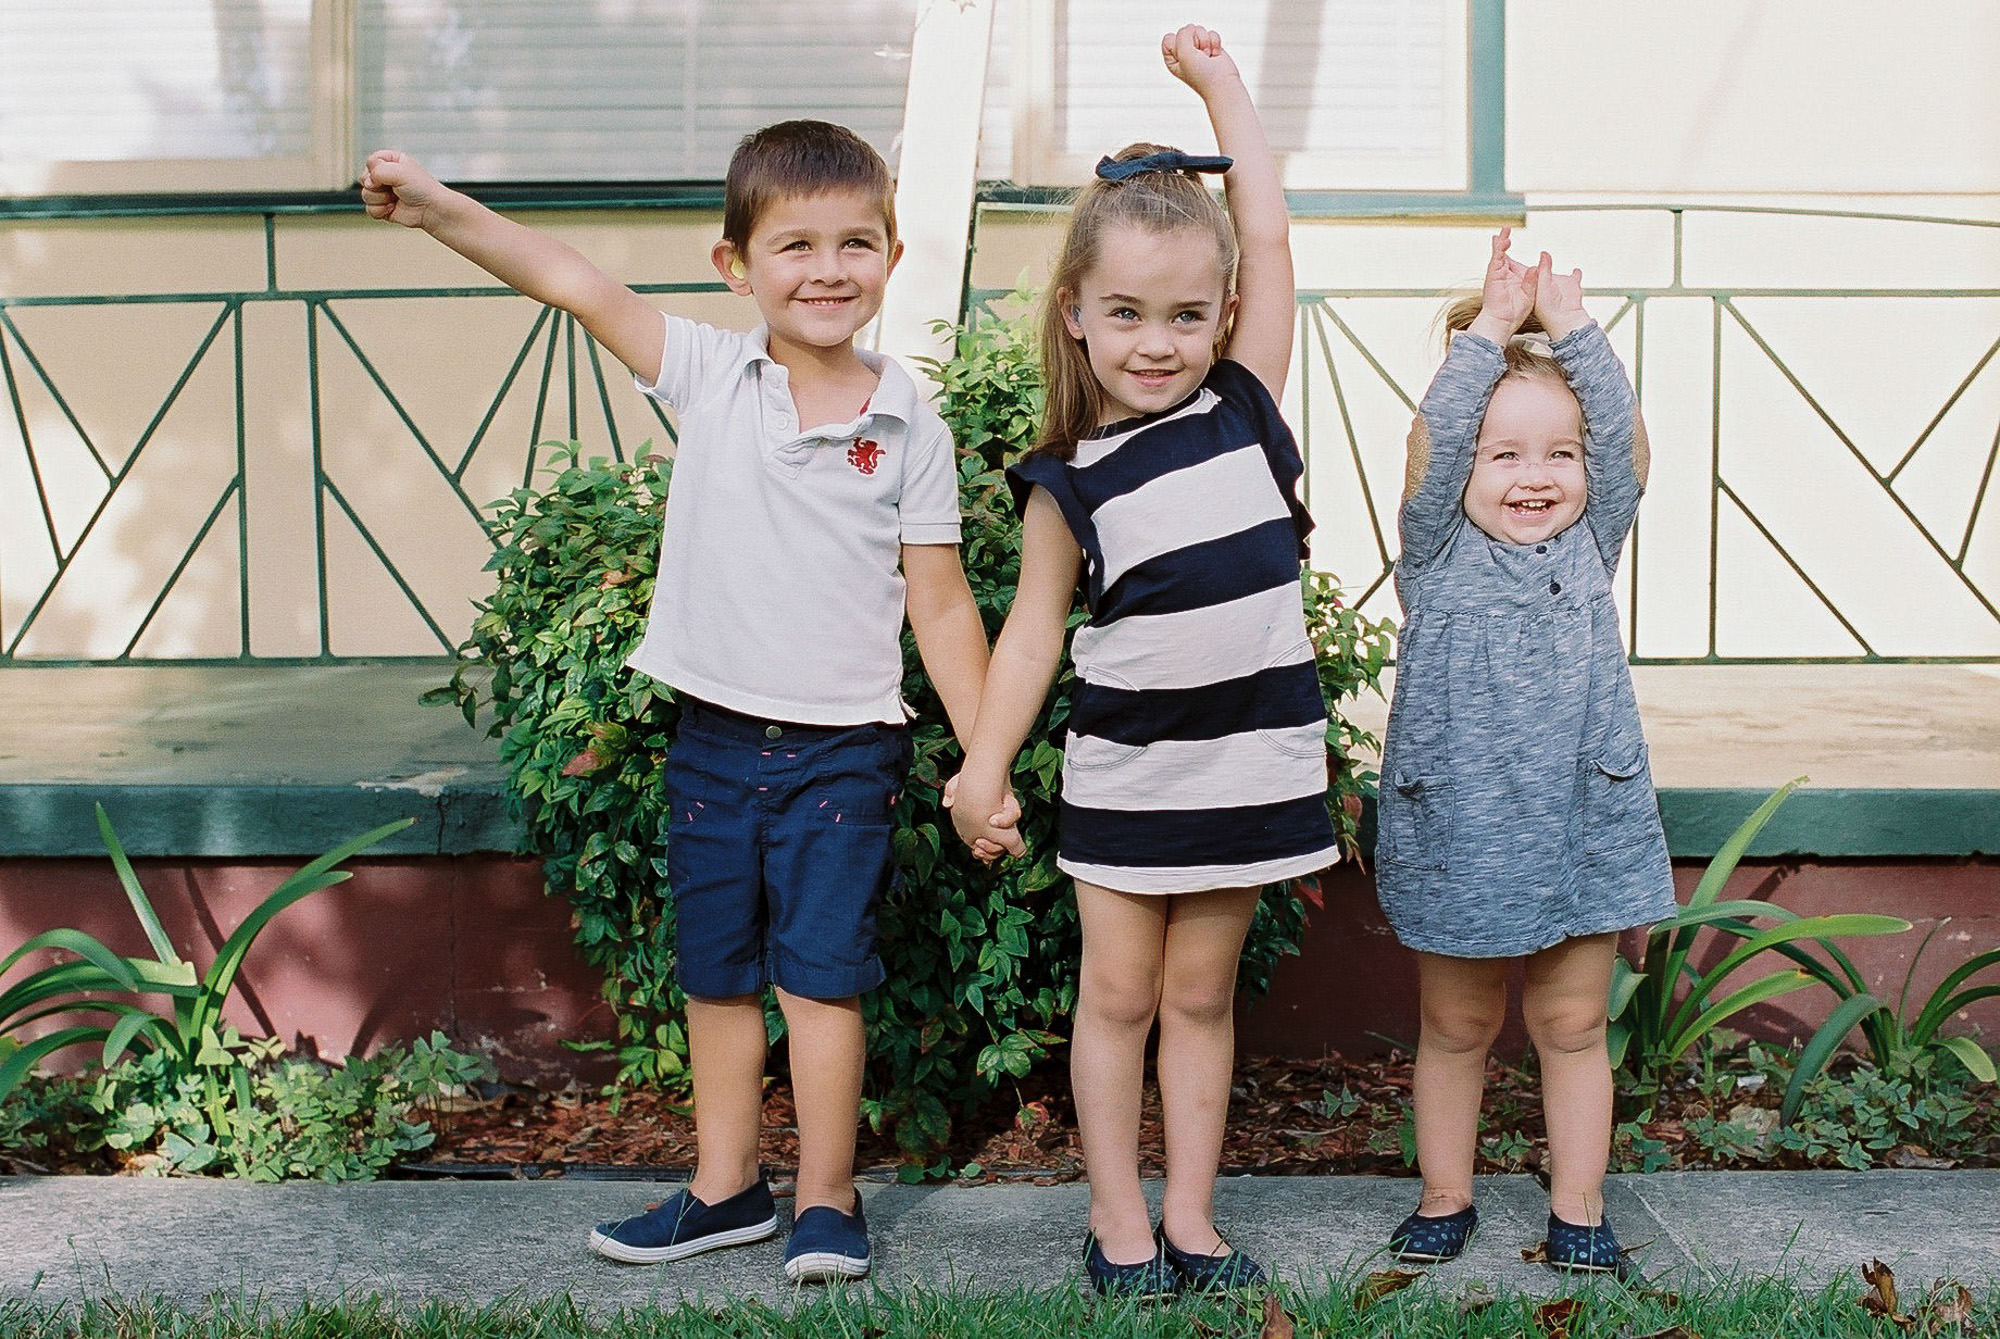 Aussie Deaf Kids aims to empower parents raising a child with hearing loss through online support, information and advocacy.